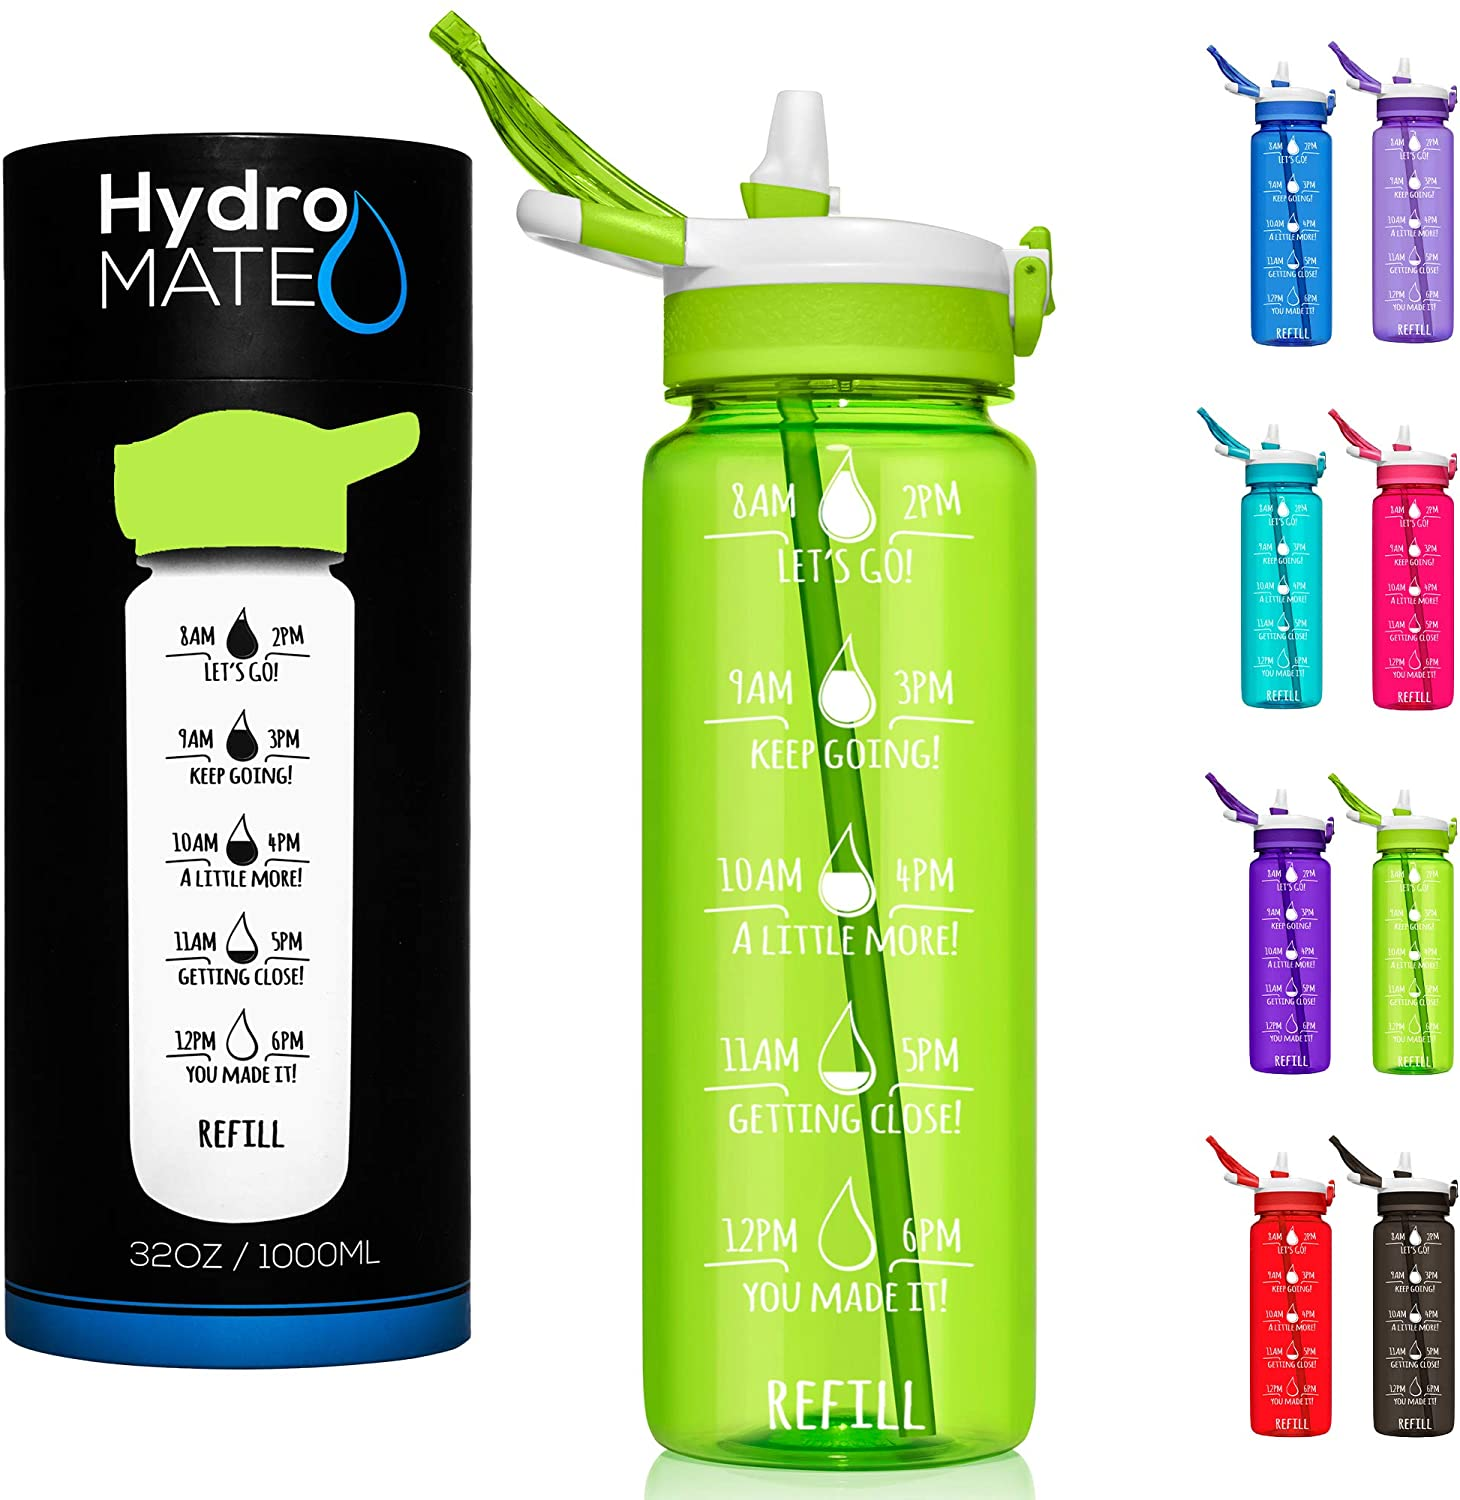 HydroMATE 32 oz Motivational Water Bottle with Time Markers with Straw BPA Free Workout Gym Fitness Bottle Times to Drink Measurements Track Intake Hydro MATE 1 Liter 32oz